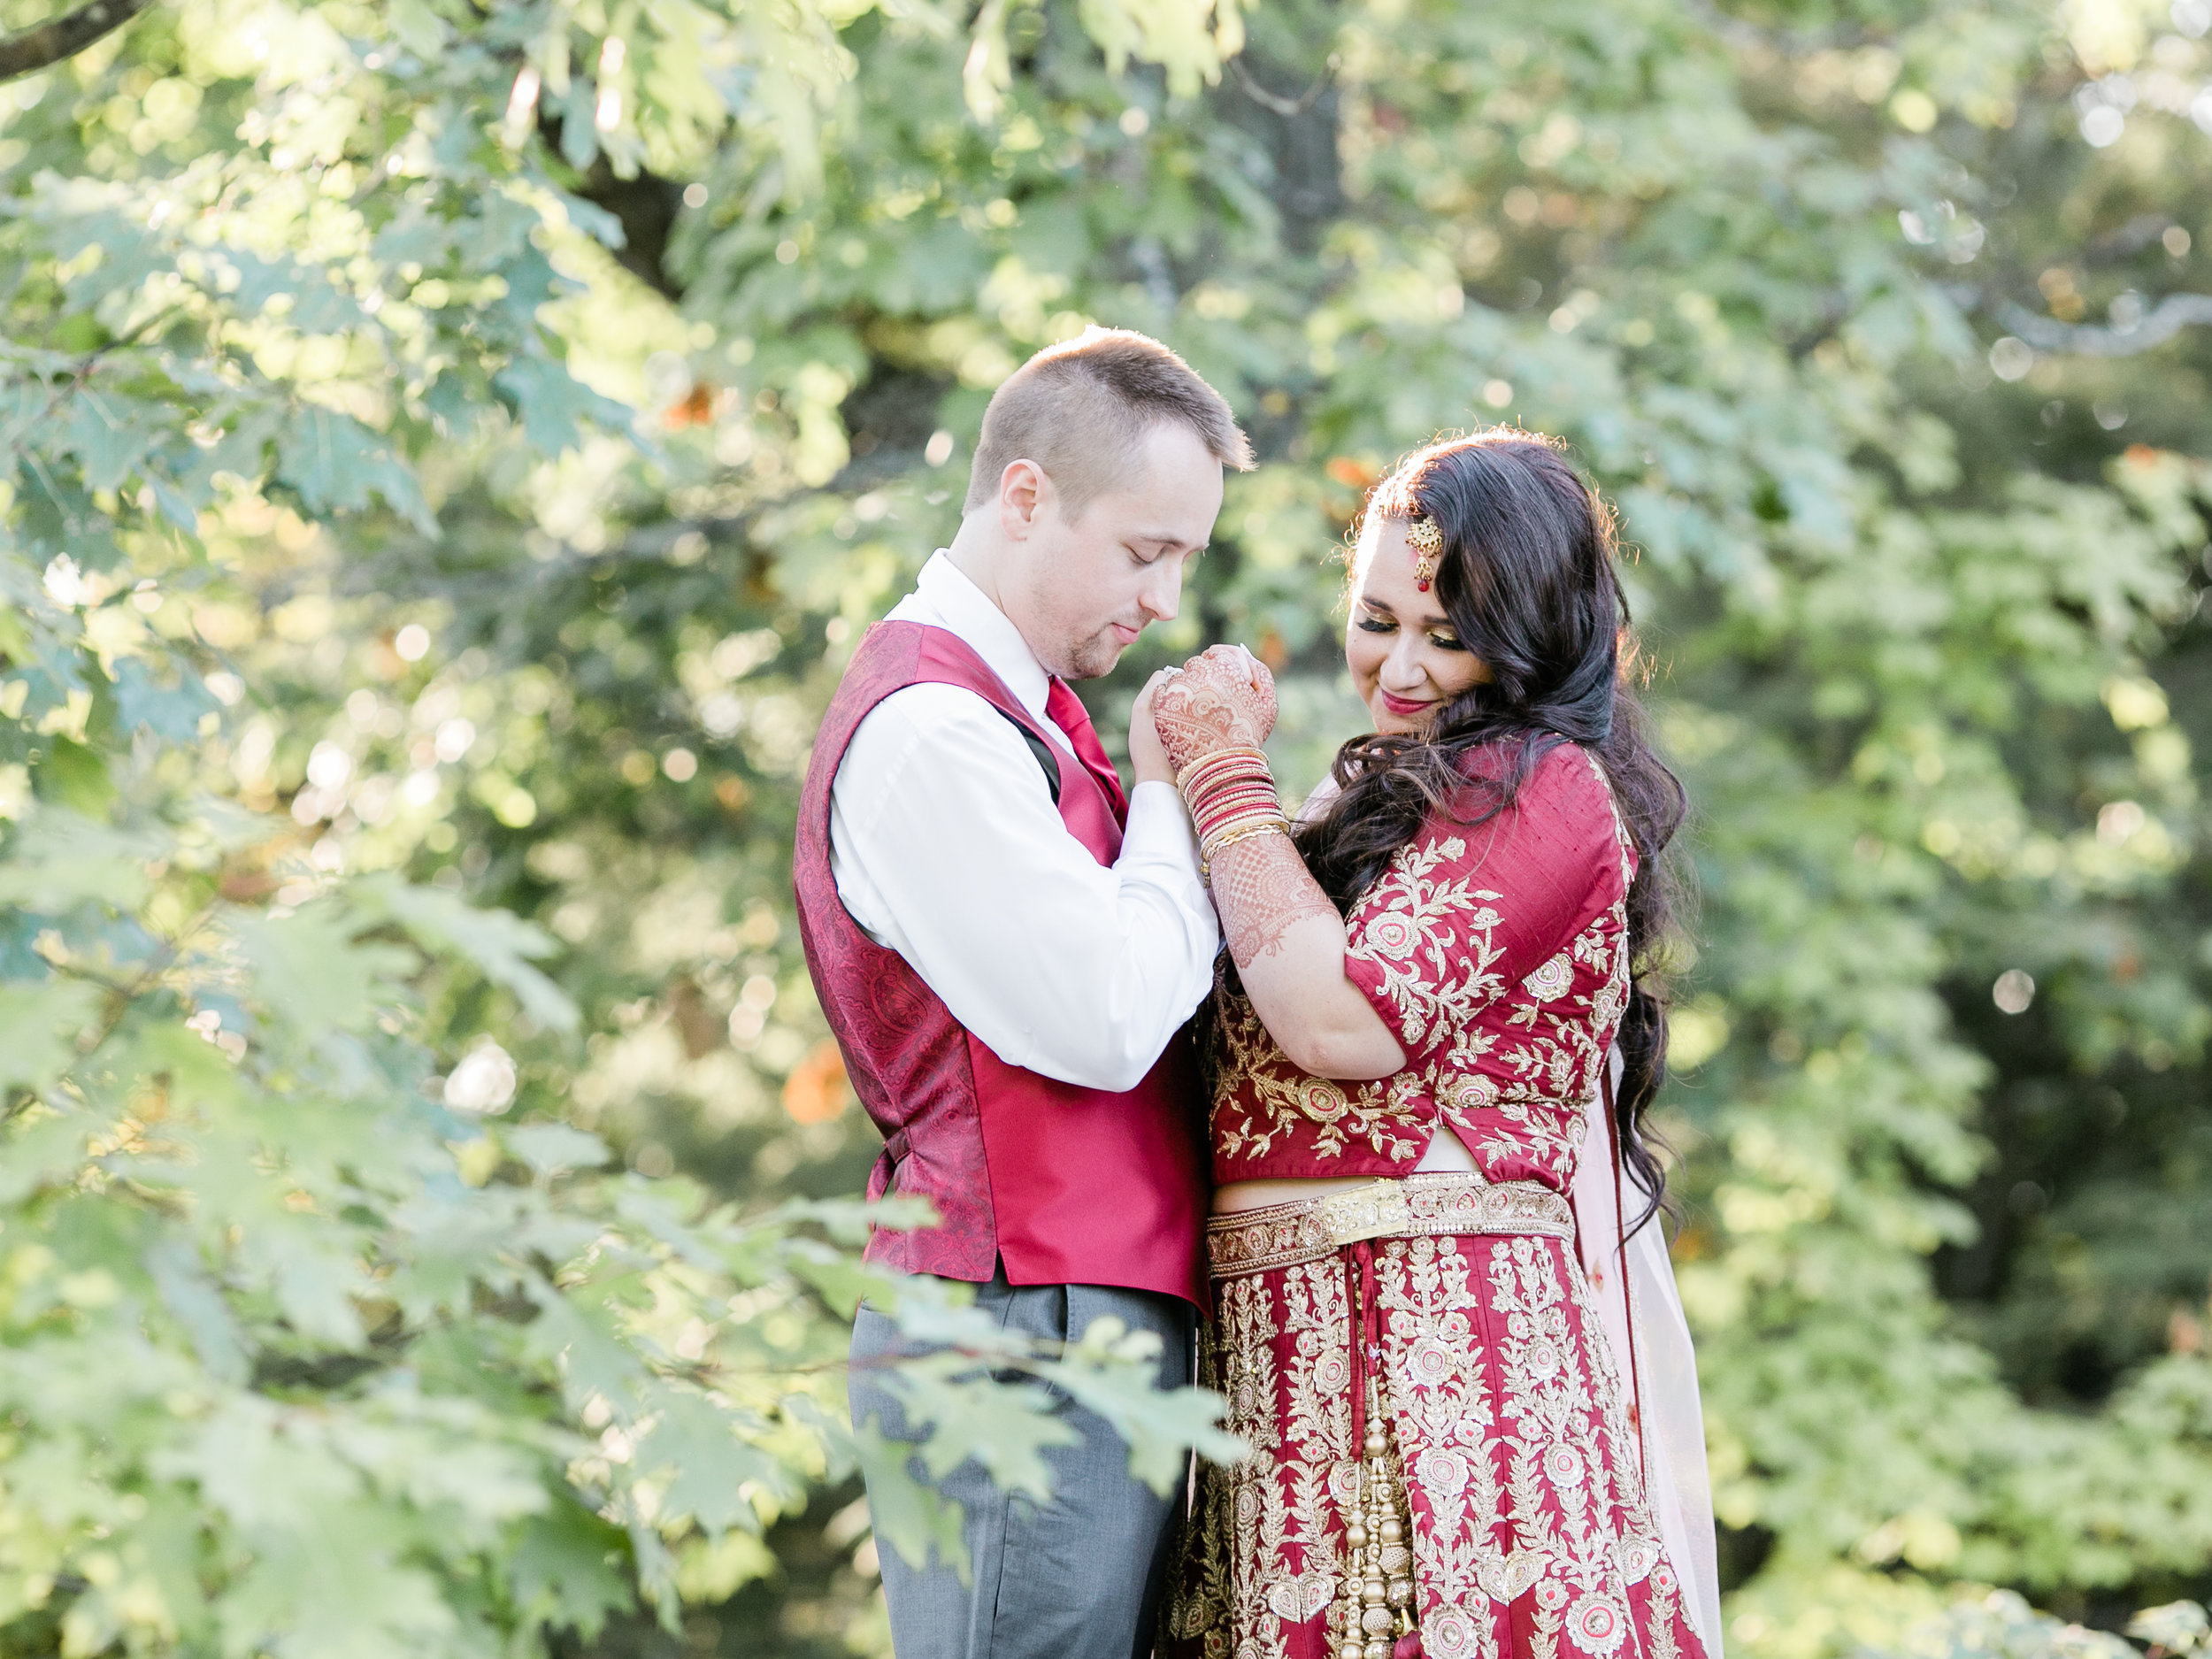 LeBelvedere_MountainTopWedding_StephanieMasonPhotography-311.jpg